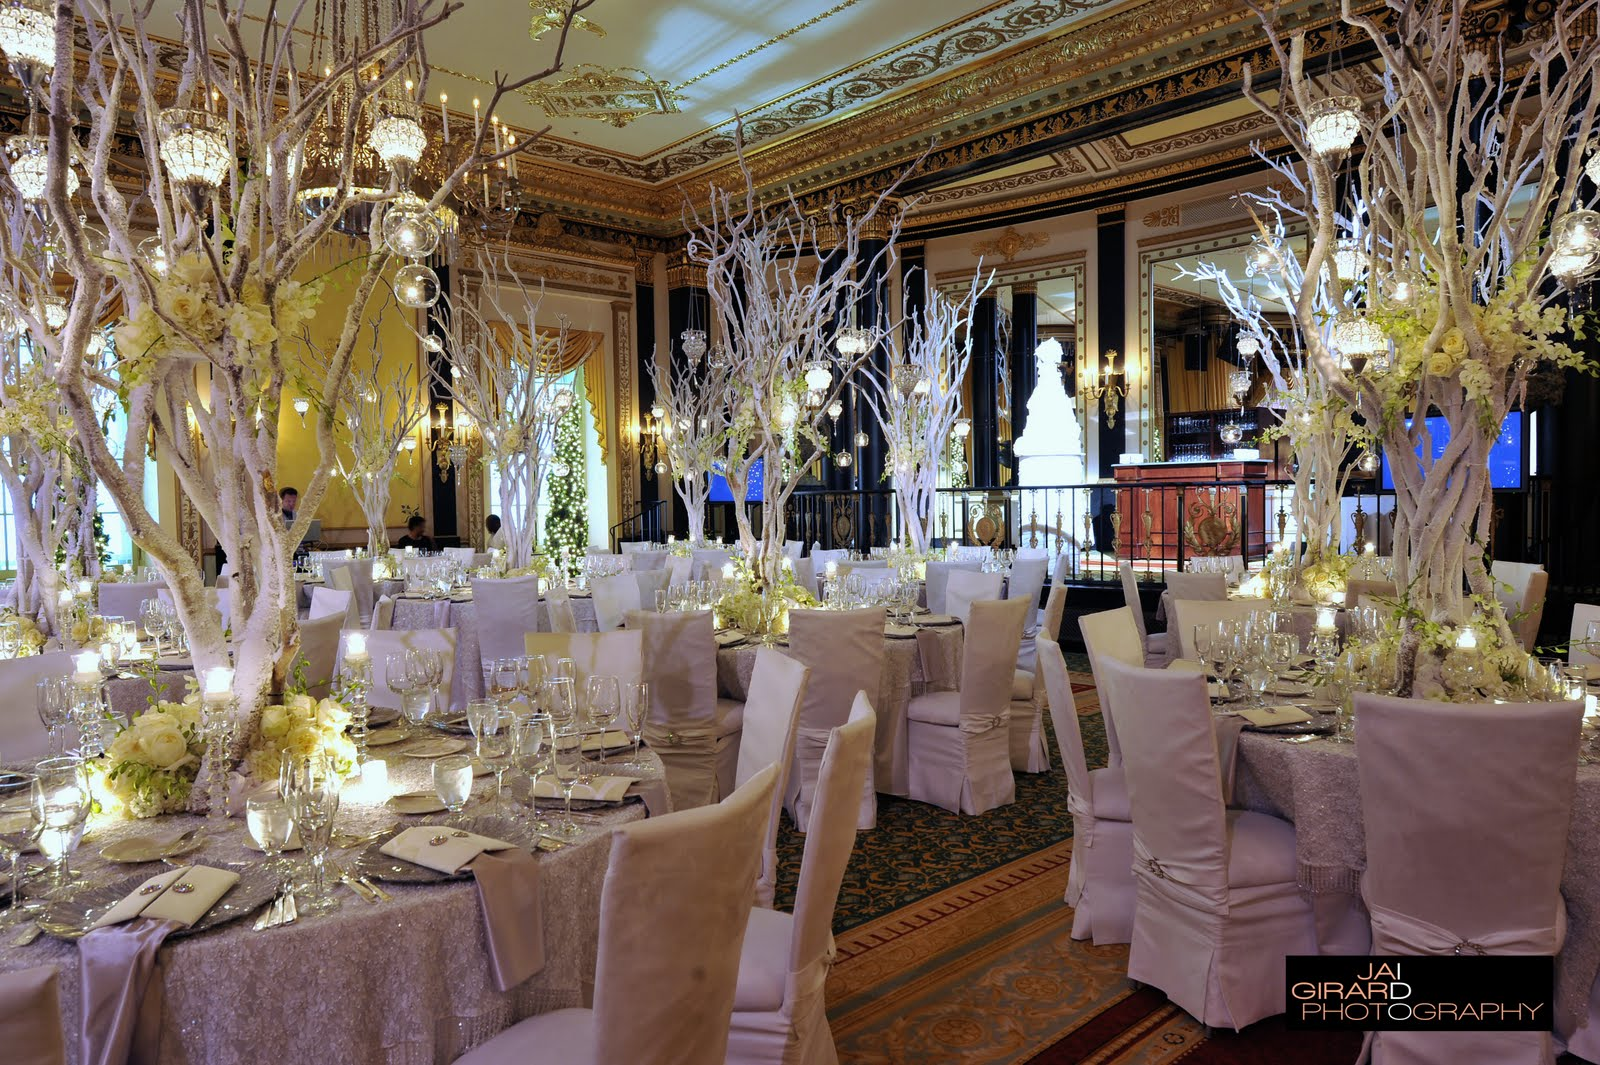 Winter wonderland wedding centerpieces wedding decorations for Floral wedding decorations ideas